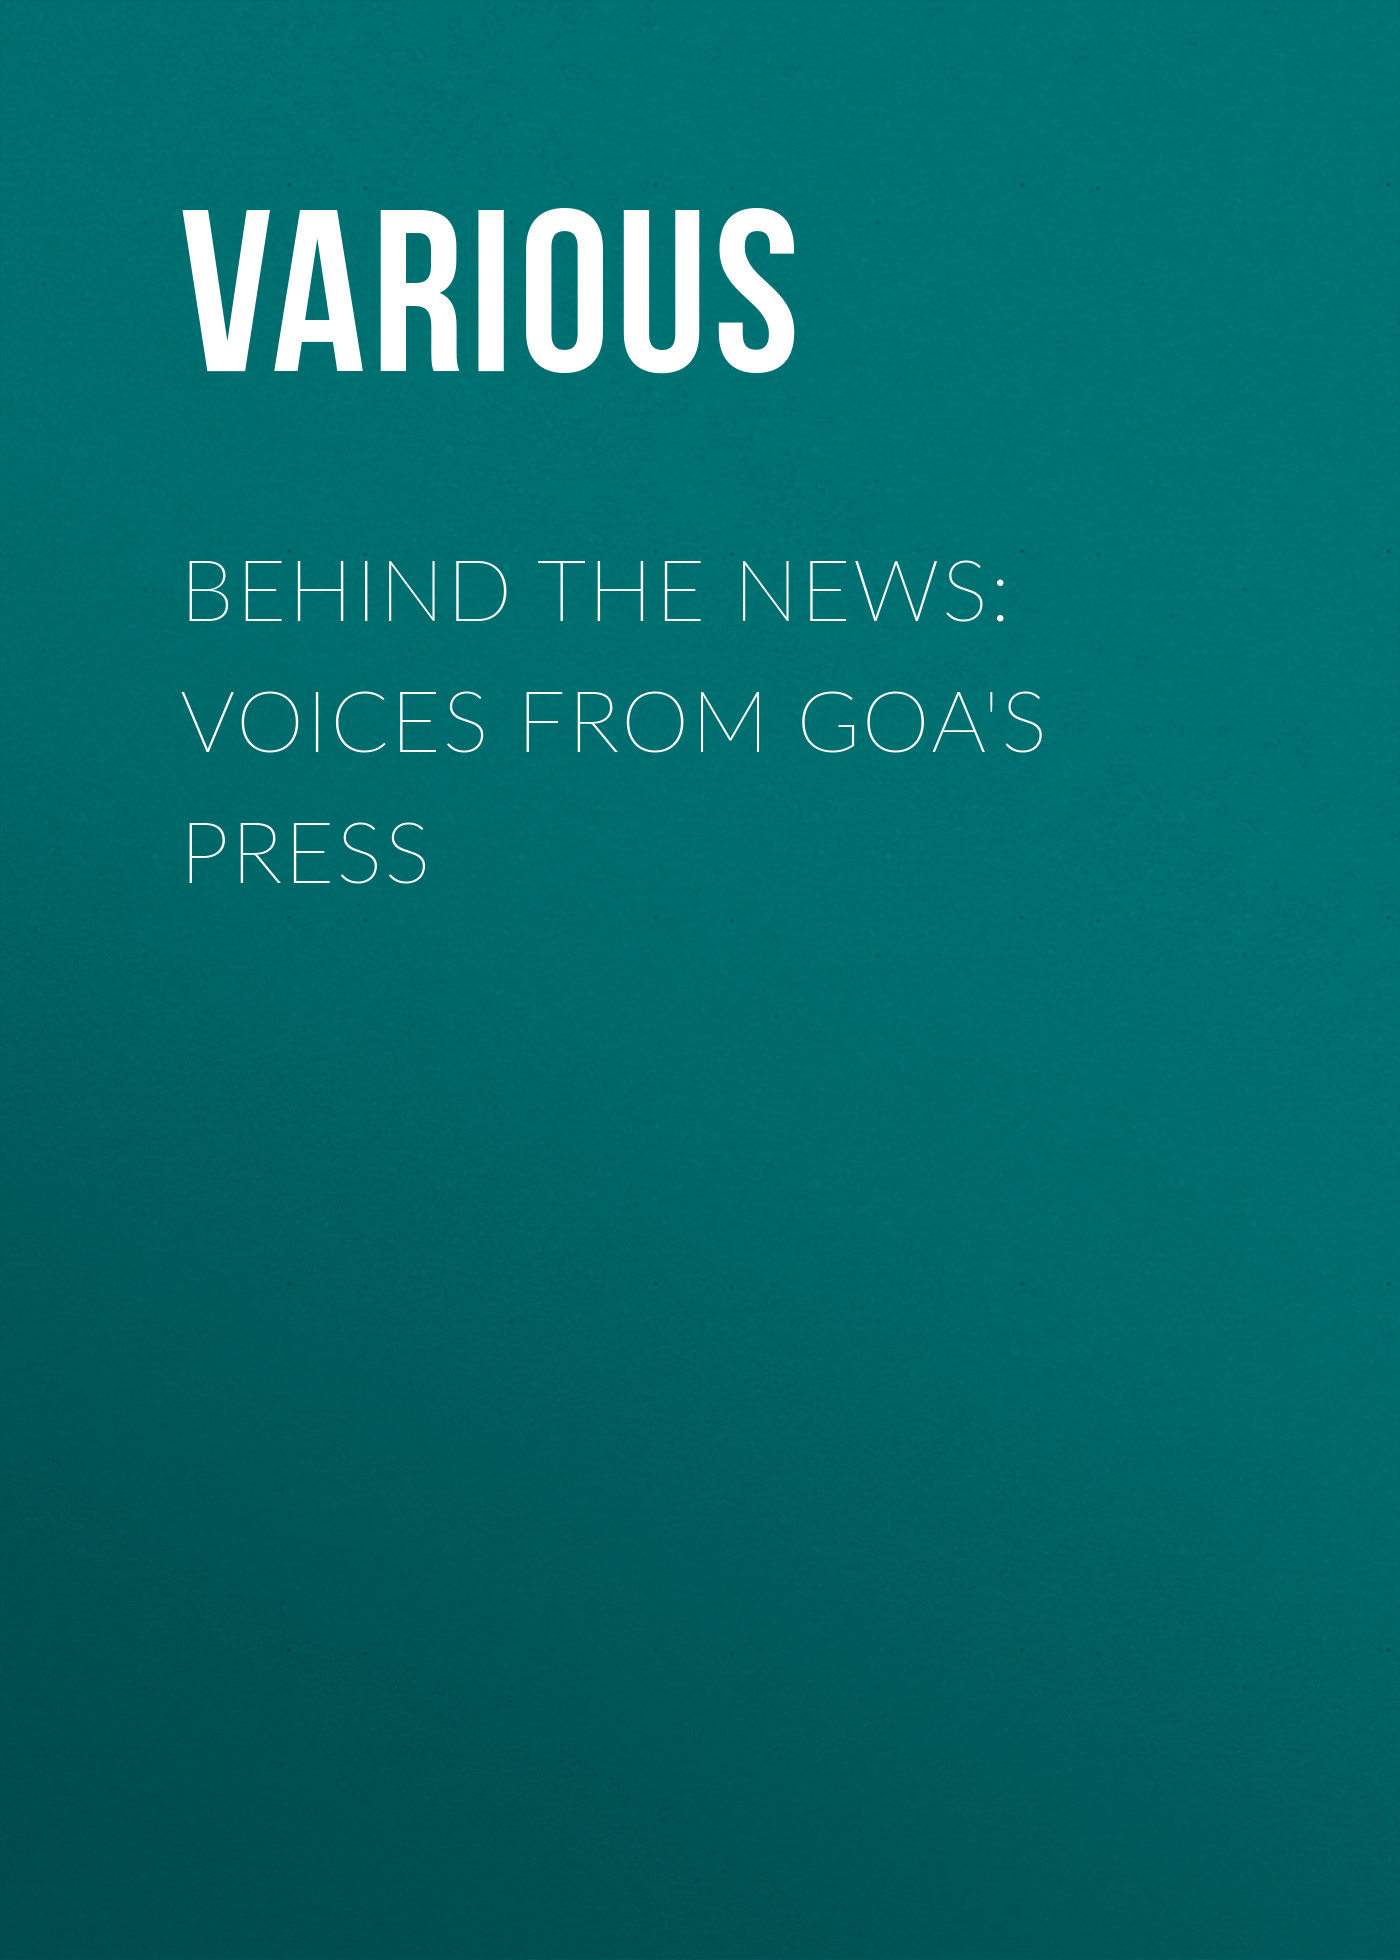 Various Behind the News: Voices from Goa's Press our voices